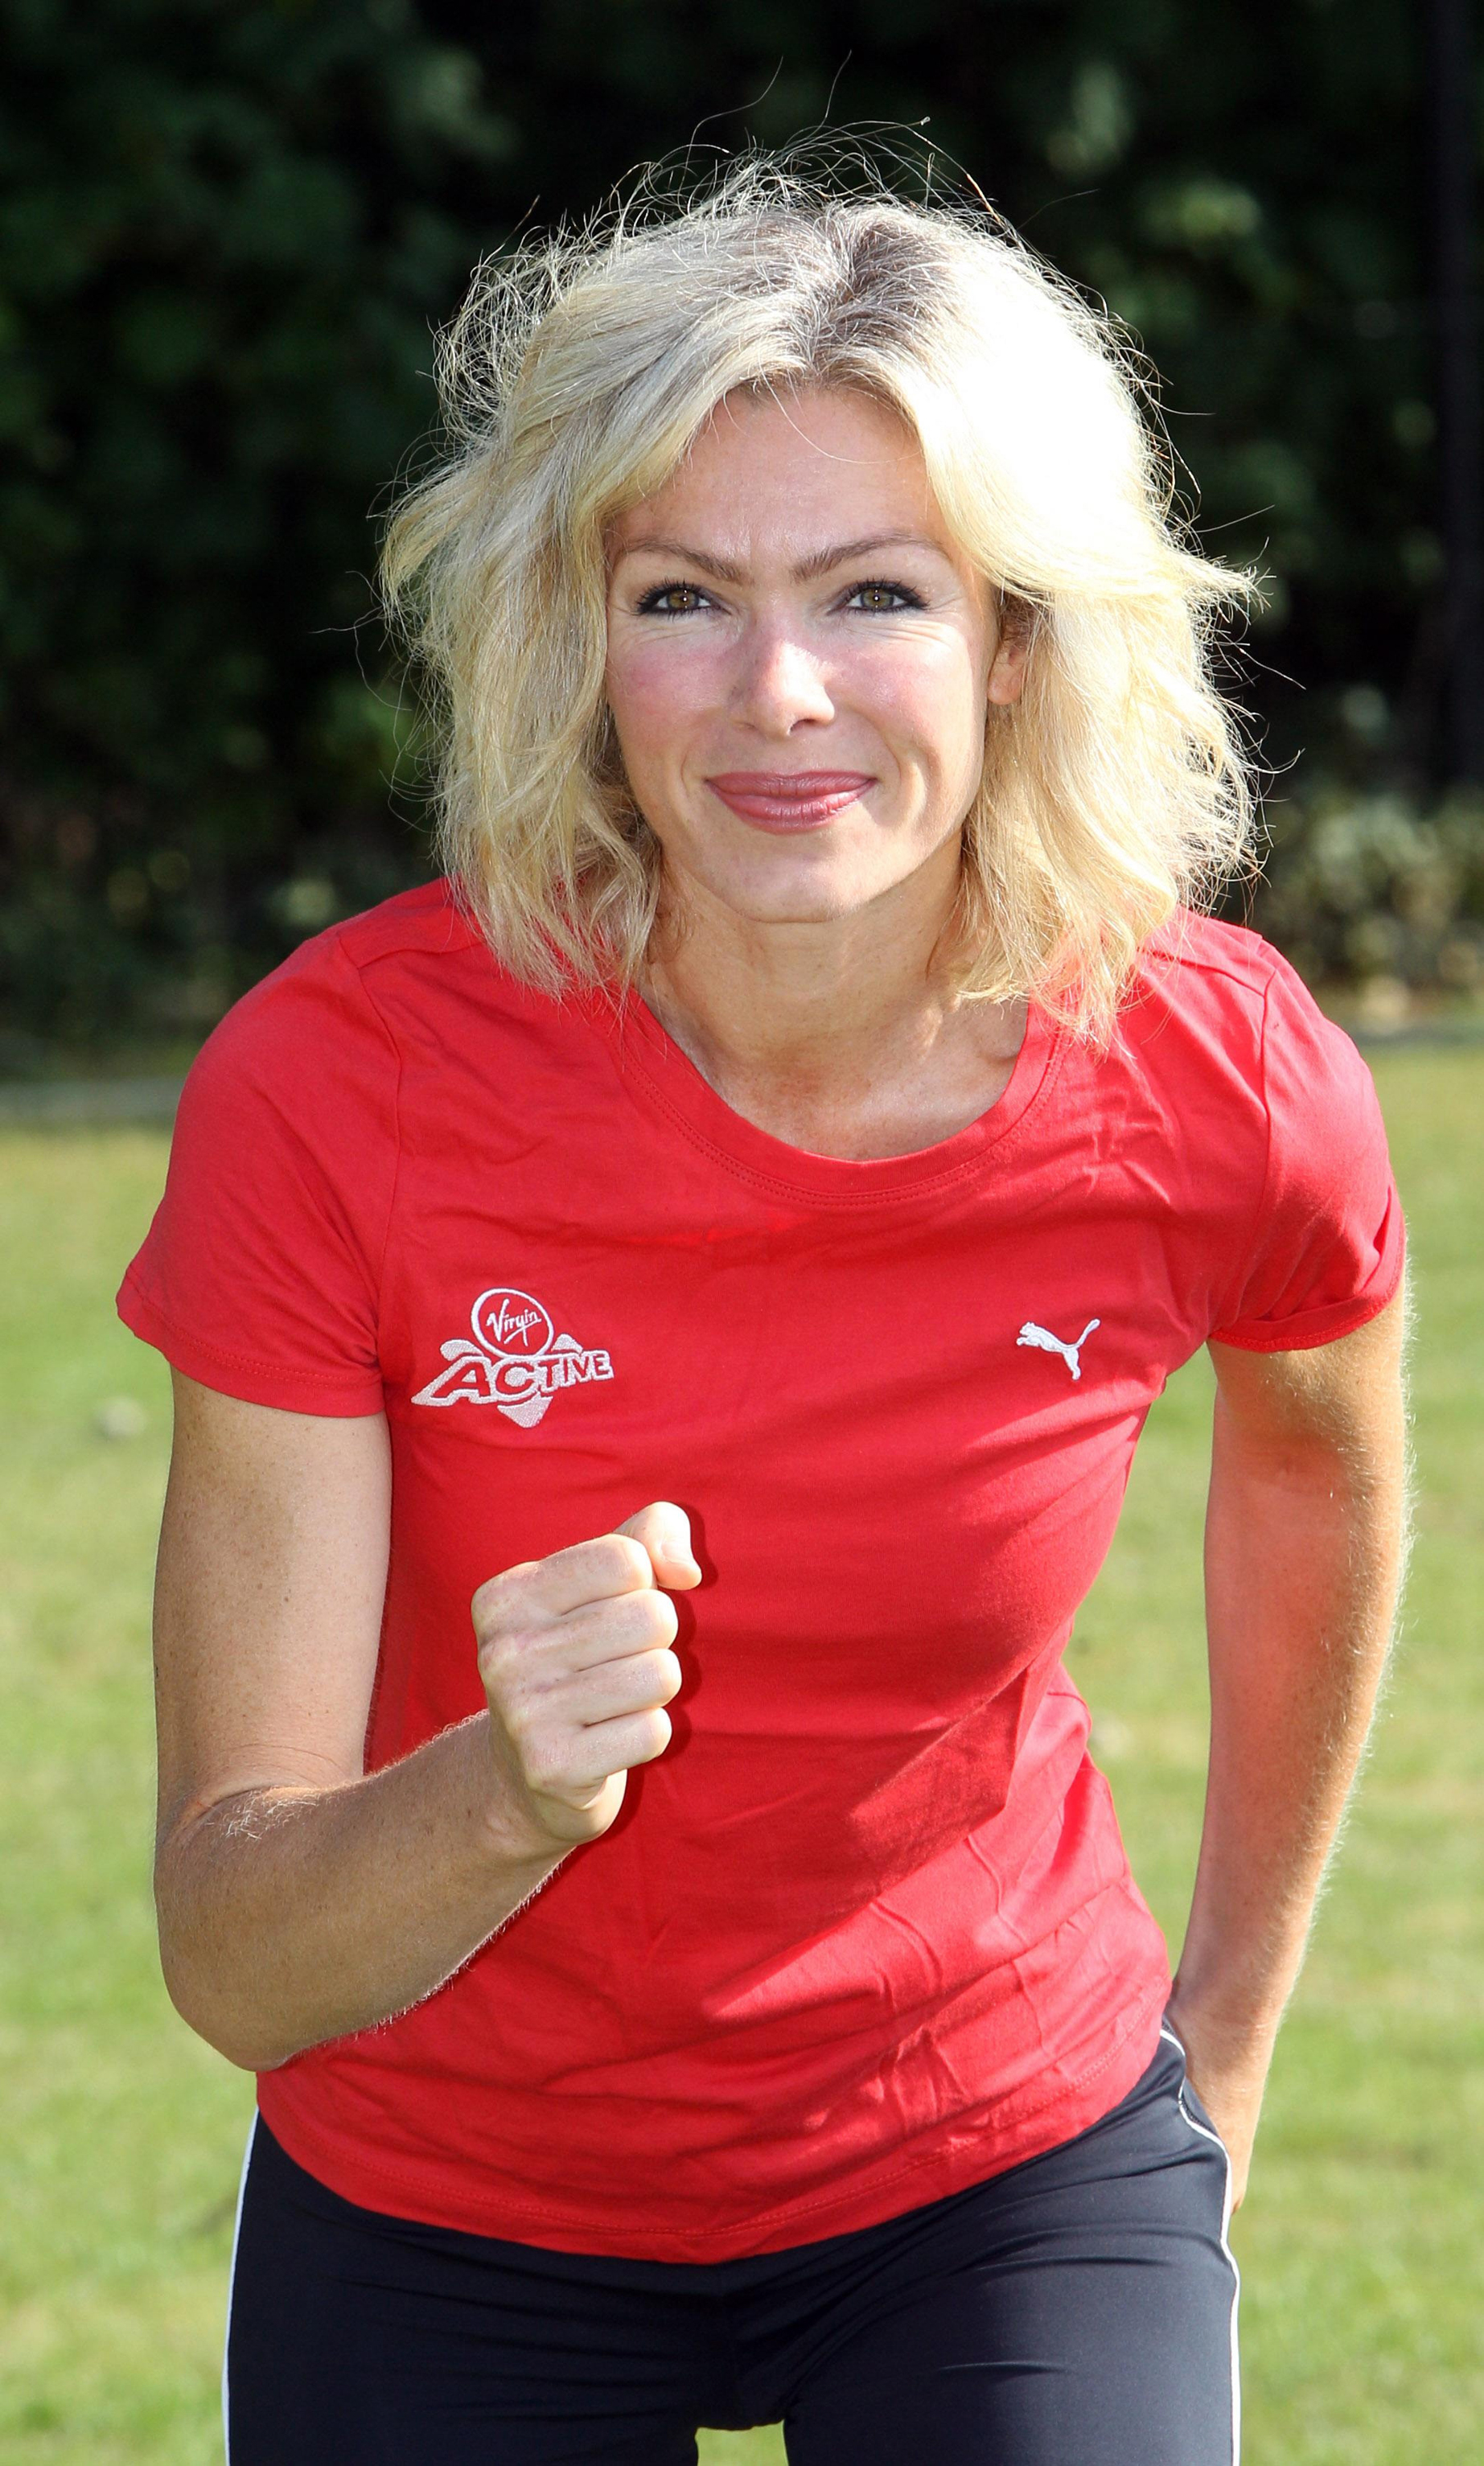 Nell McAndrew helps launch the Virgin Active London Triathlon in West London. (Lewis Whyld/PA)